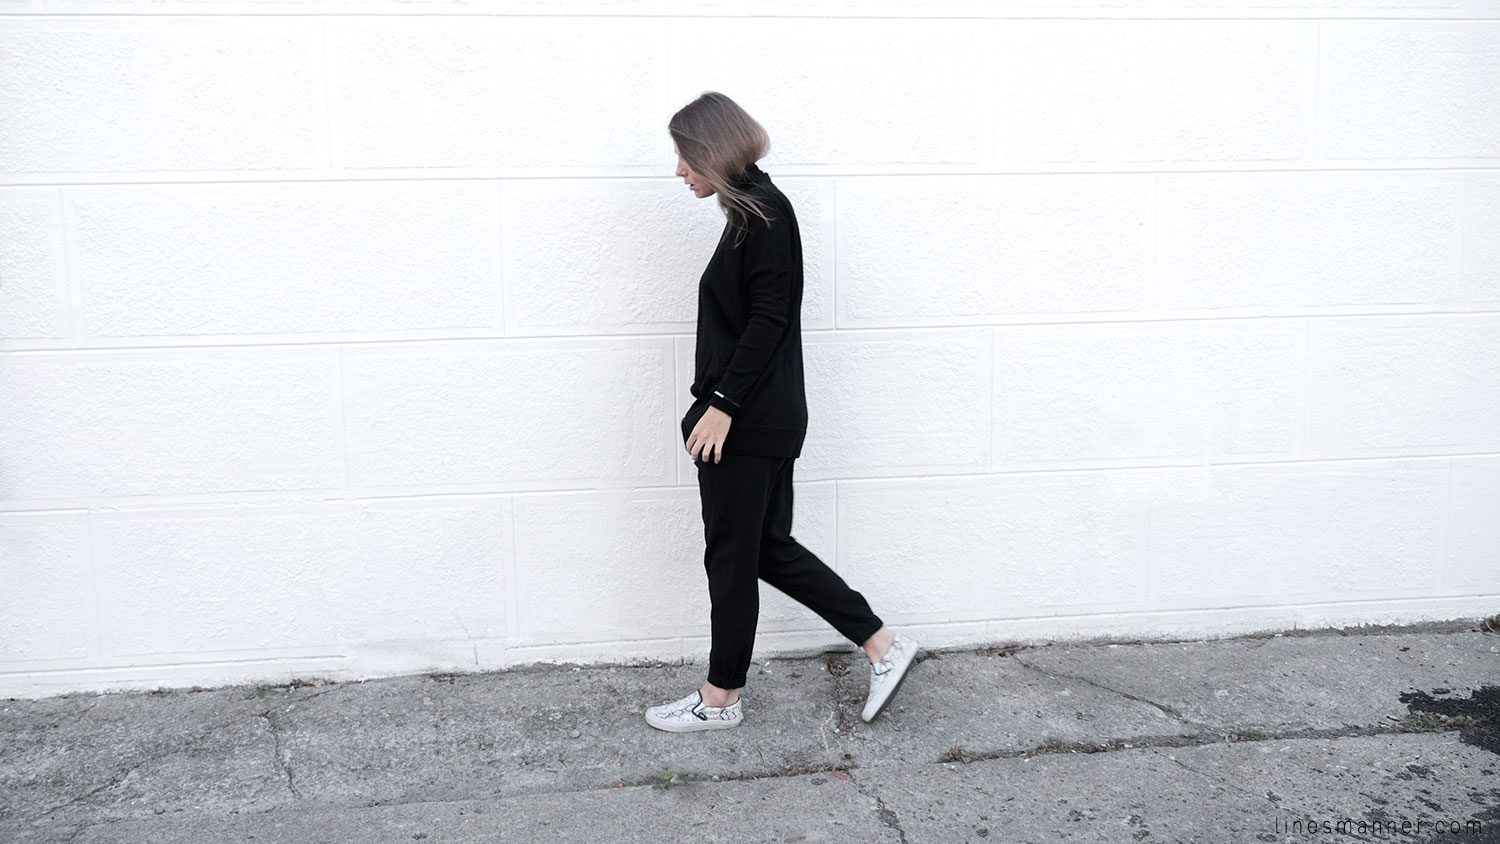 Lines-Manner-Minimalism-Details-Black-All_black_everything-Simplicity-Timeless-Modern-Monochrome-Essential-Basics-Staples_pieces-Outfit-Design-Effortless-3